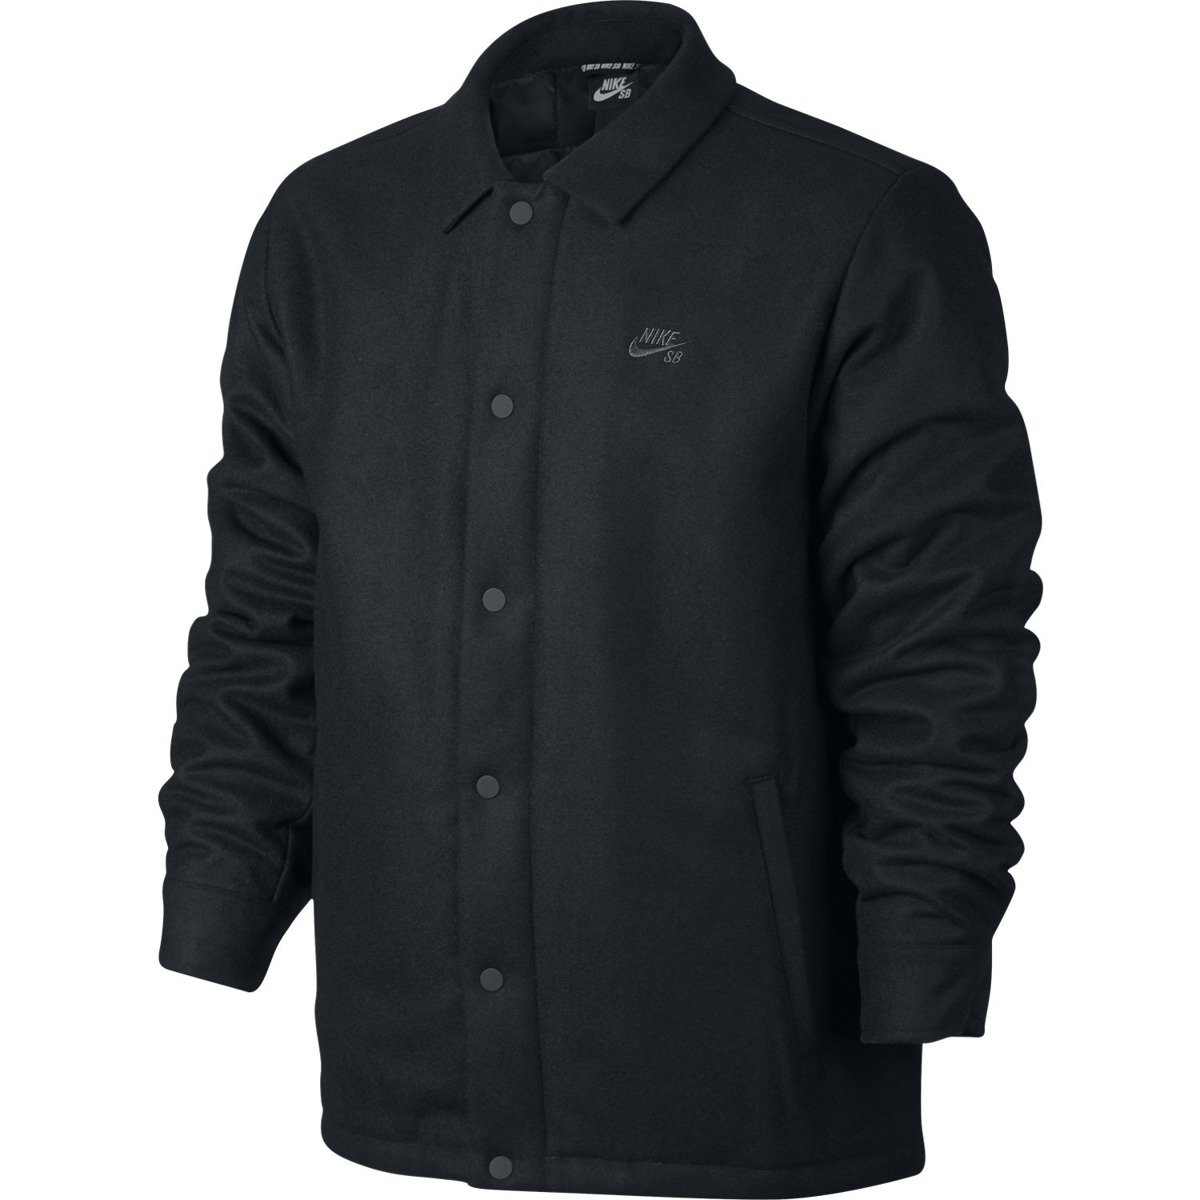 Nike SB Wool Coaches Jacket Black anthracite Click to zoom ... dff63e856